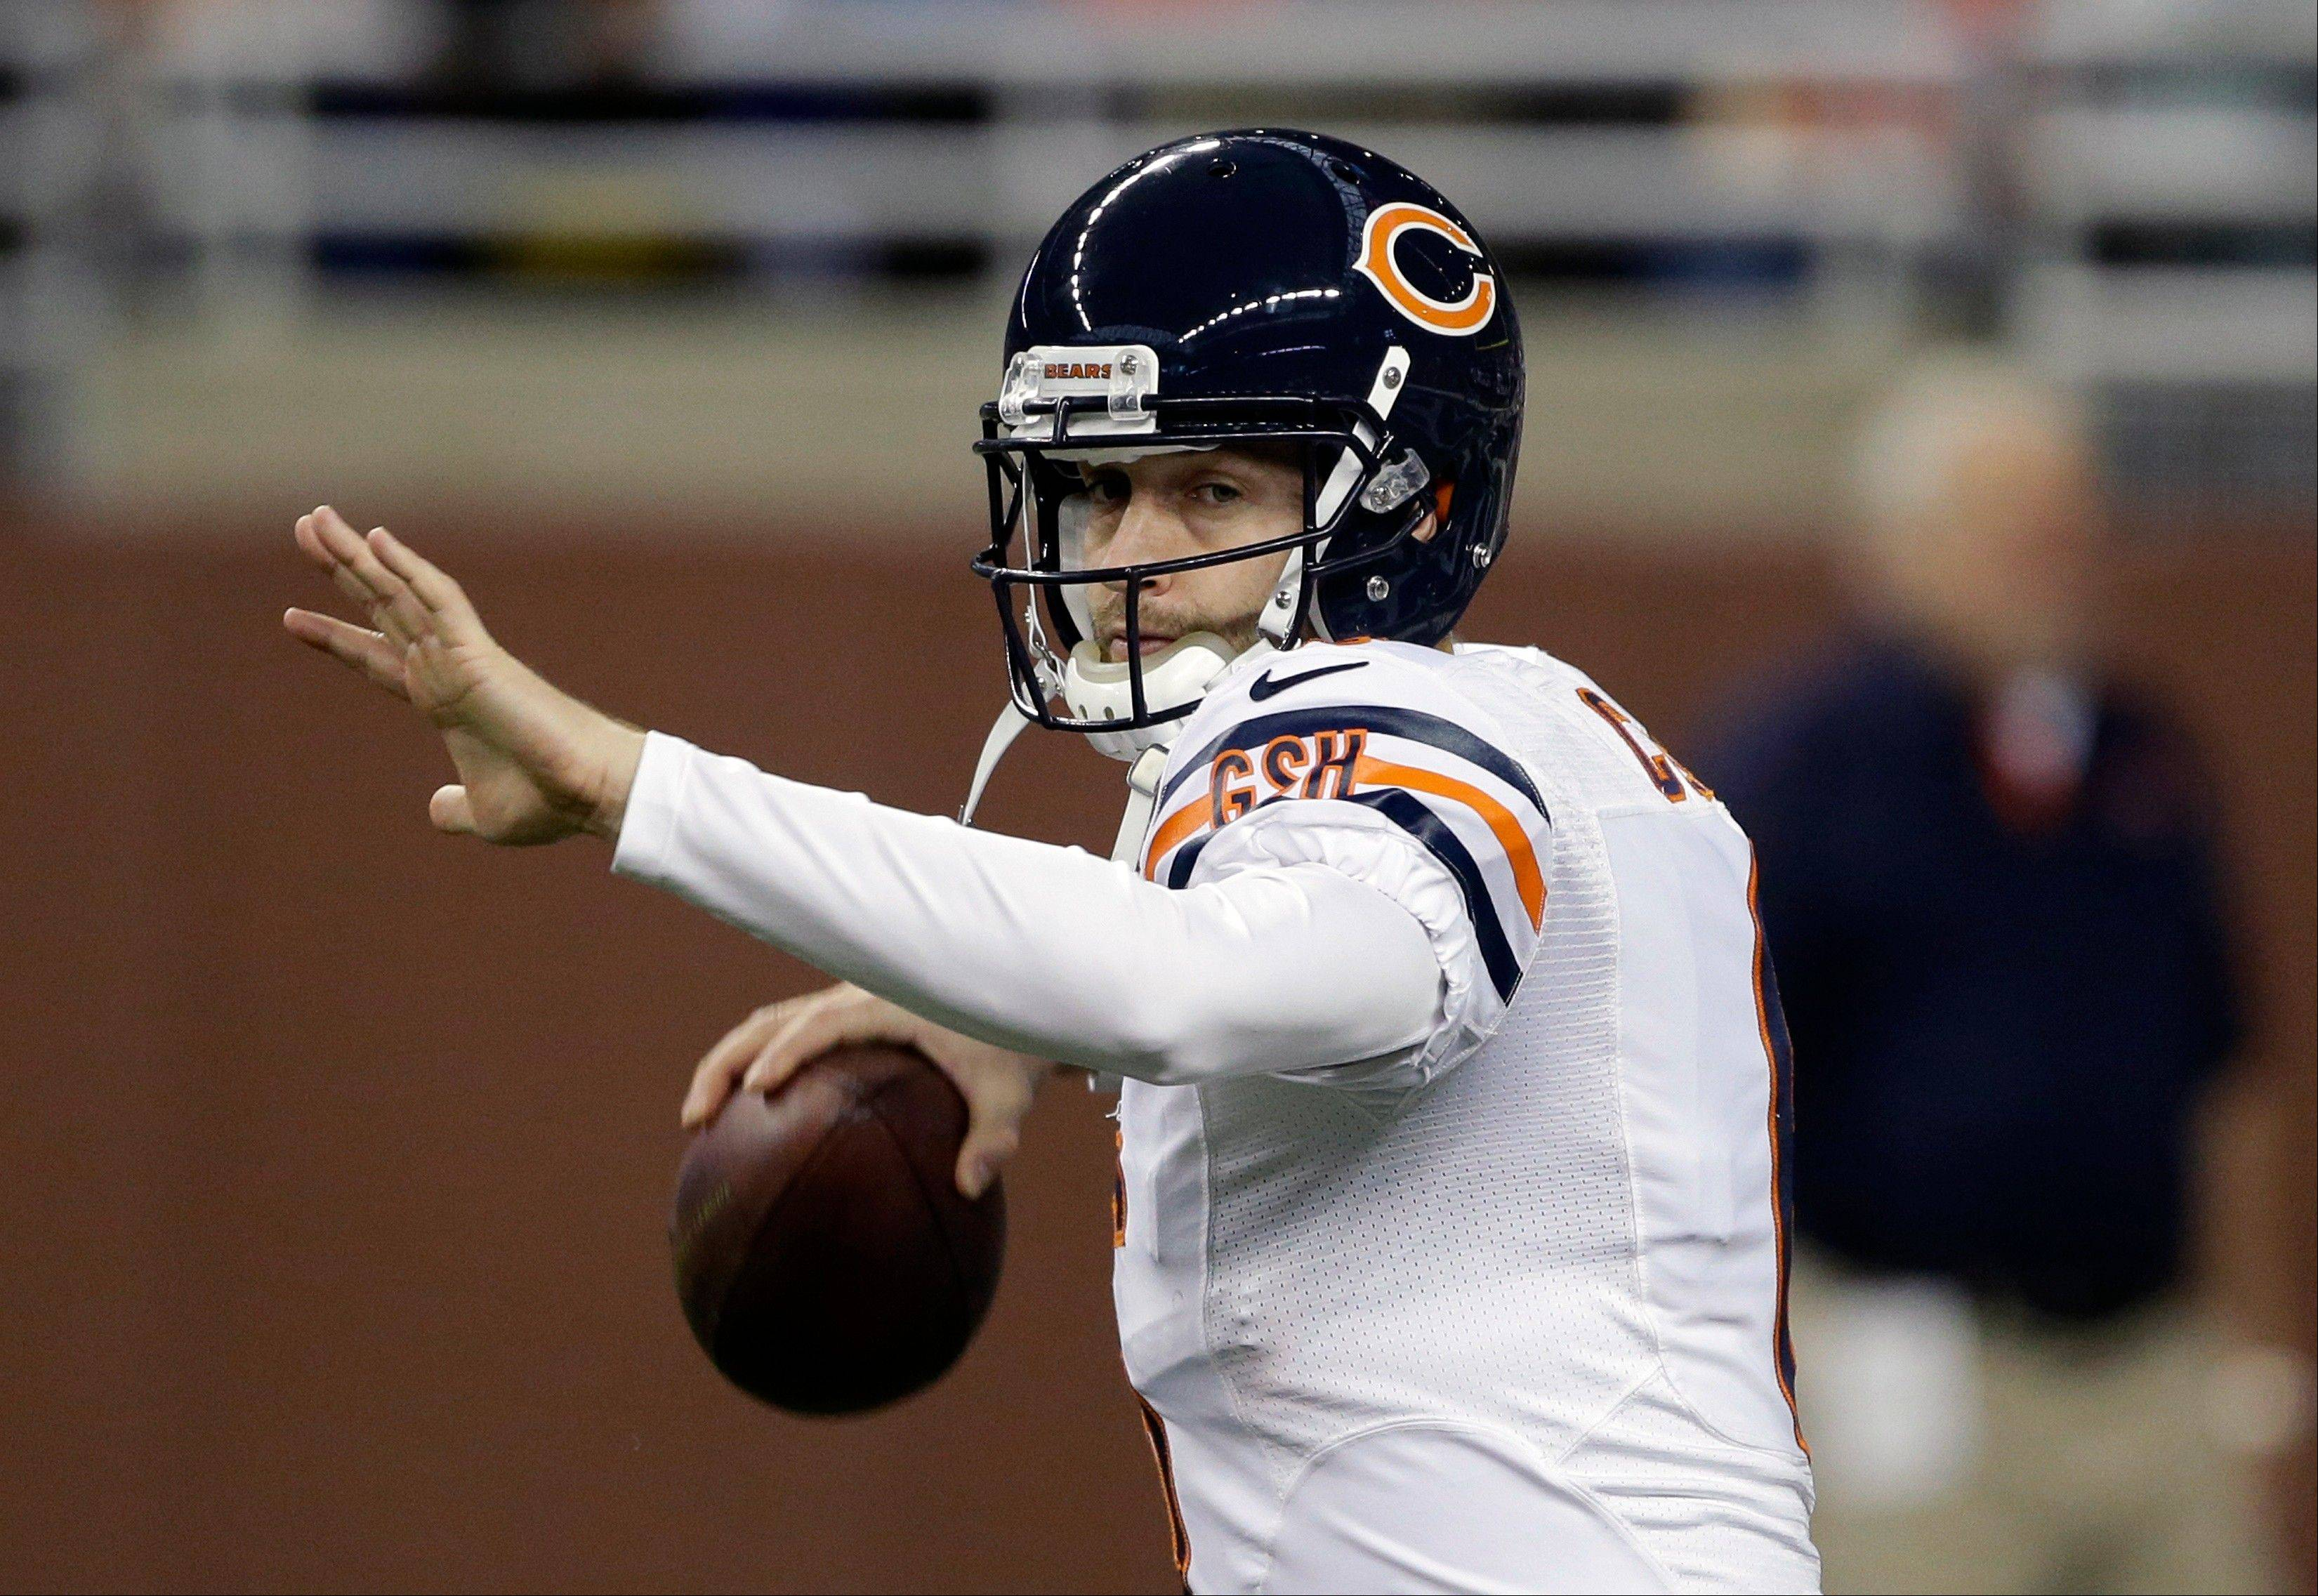 Chicago Bears quarterback Jay Cutler warms up before an NFL football game against the Detroit Lions at Ford Field.